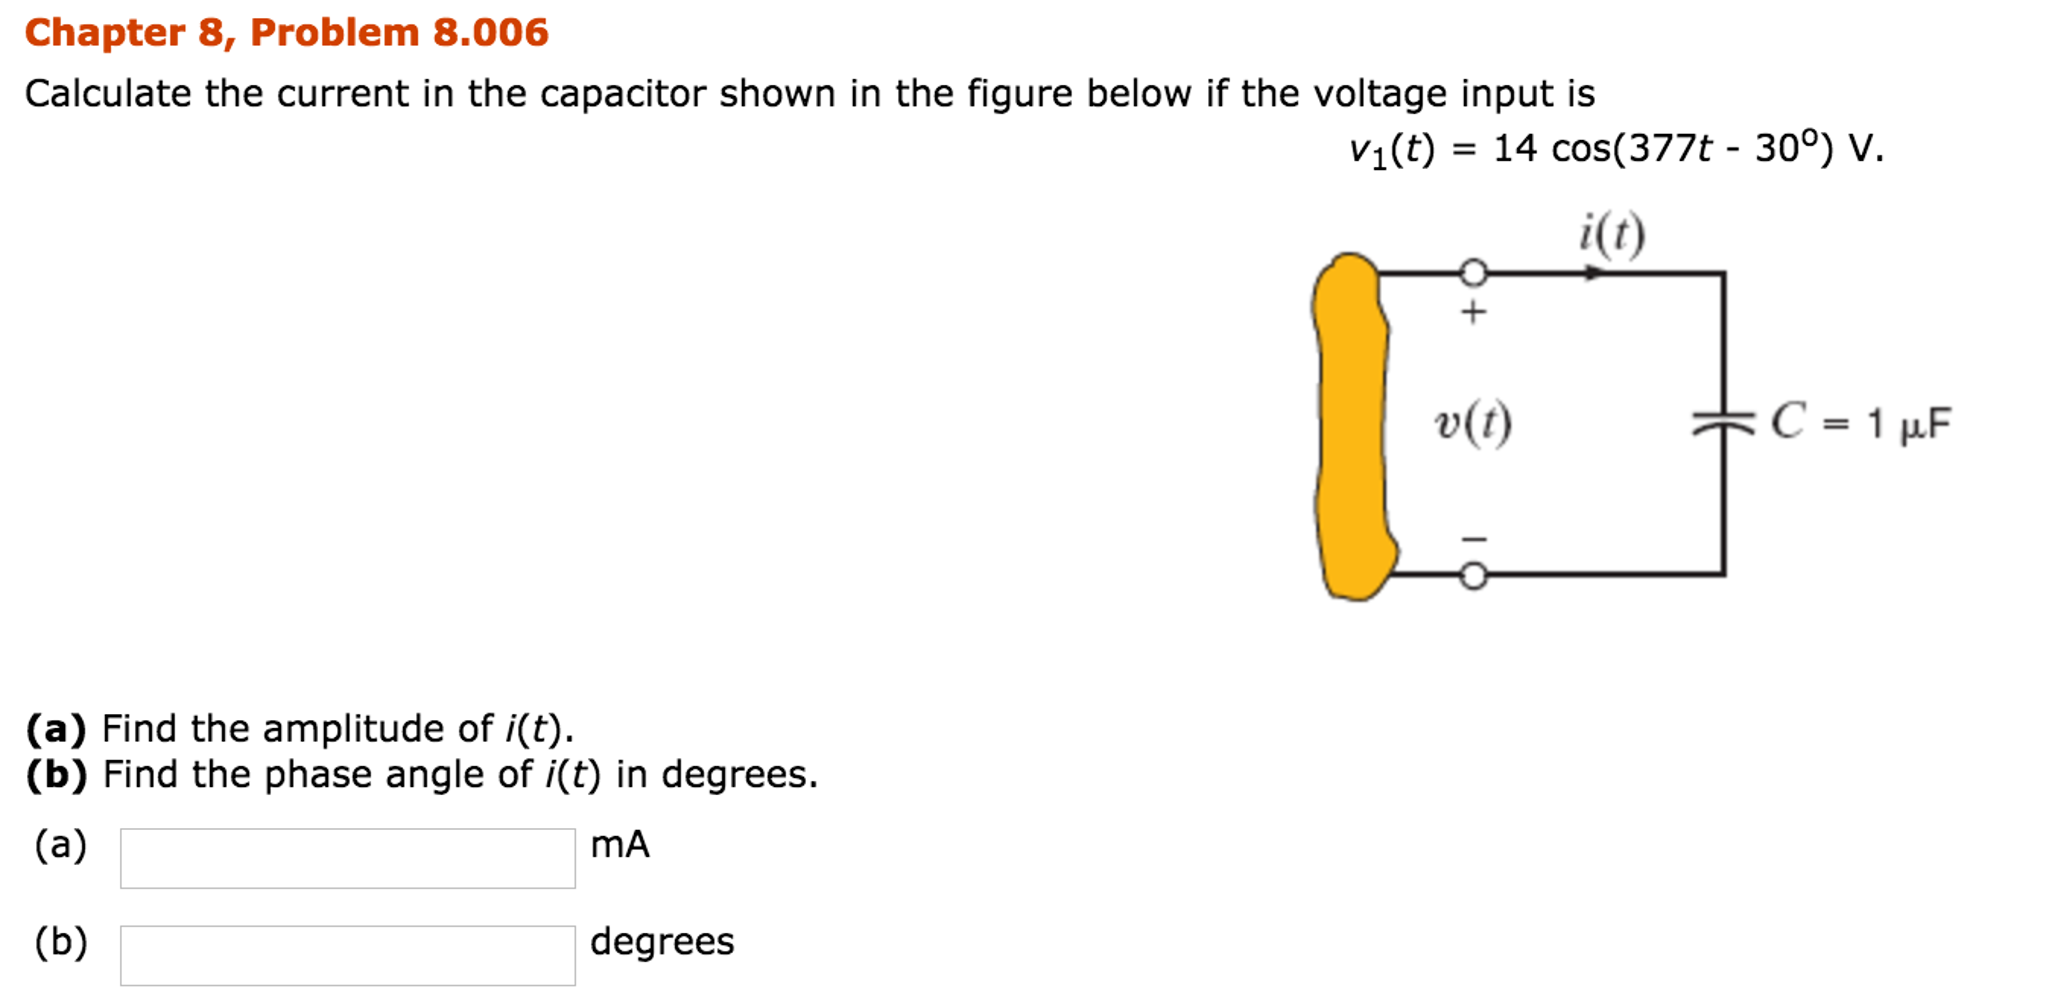 Electrical engineering archive november 20 2016 chegg chapter 8 problem 8001 circuit solution given it 5 cos220t 1200 a determine the period of the current ms the tolerance is 2 fandeluxe Choice Image